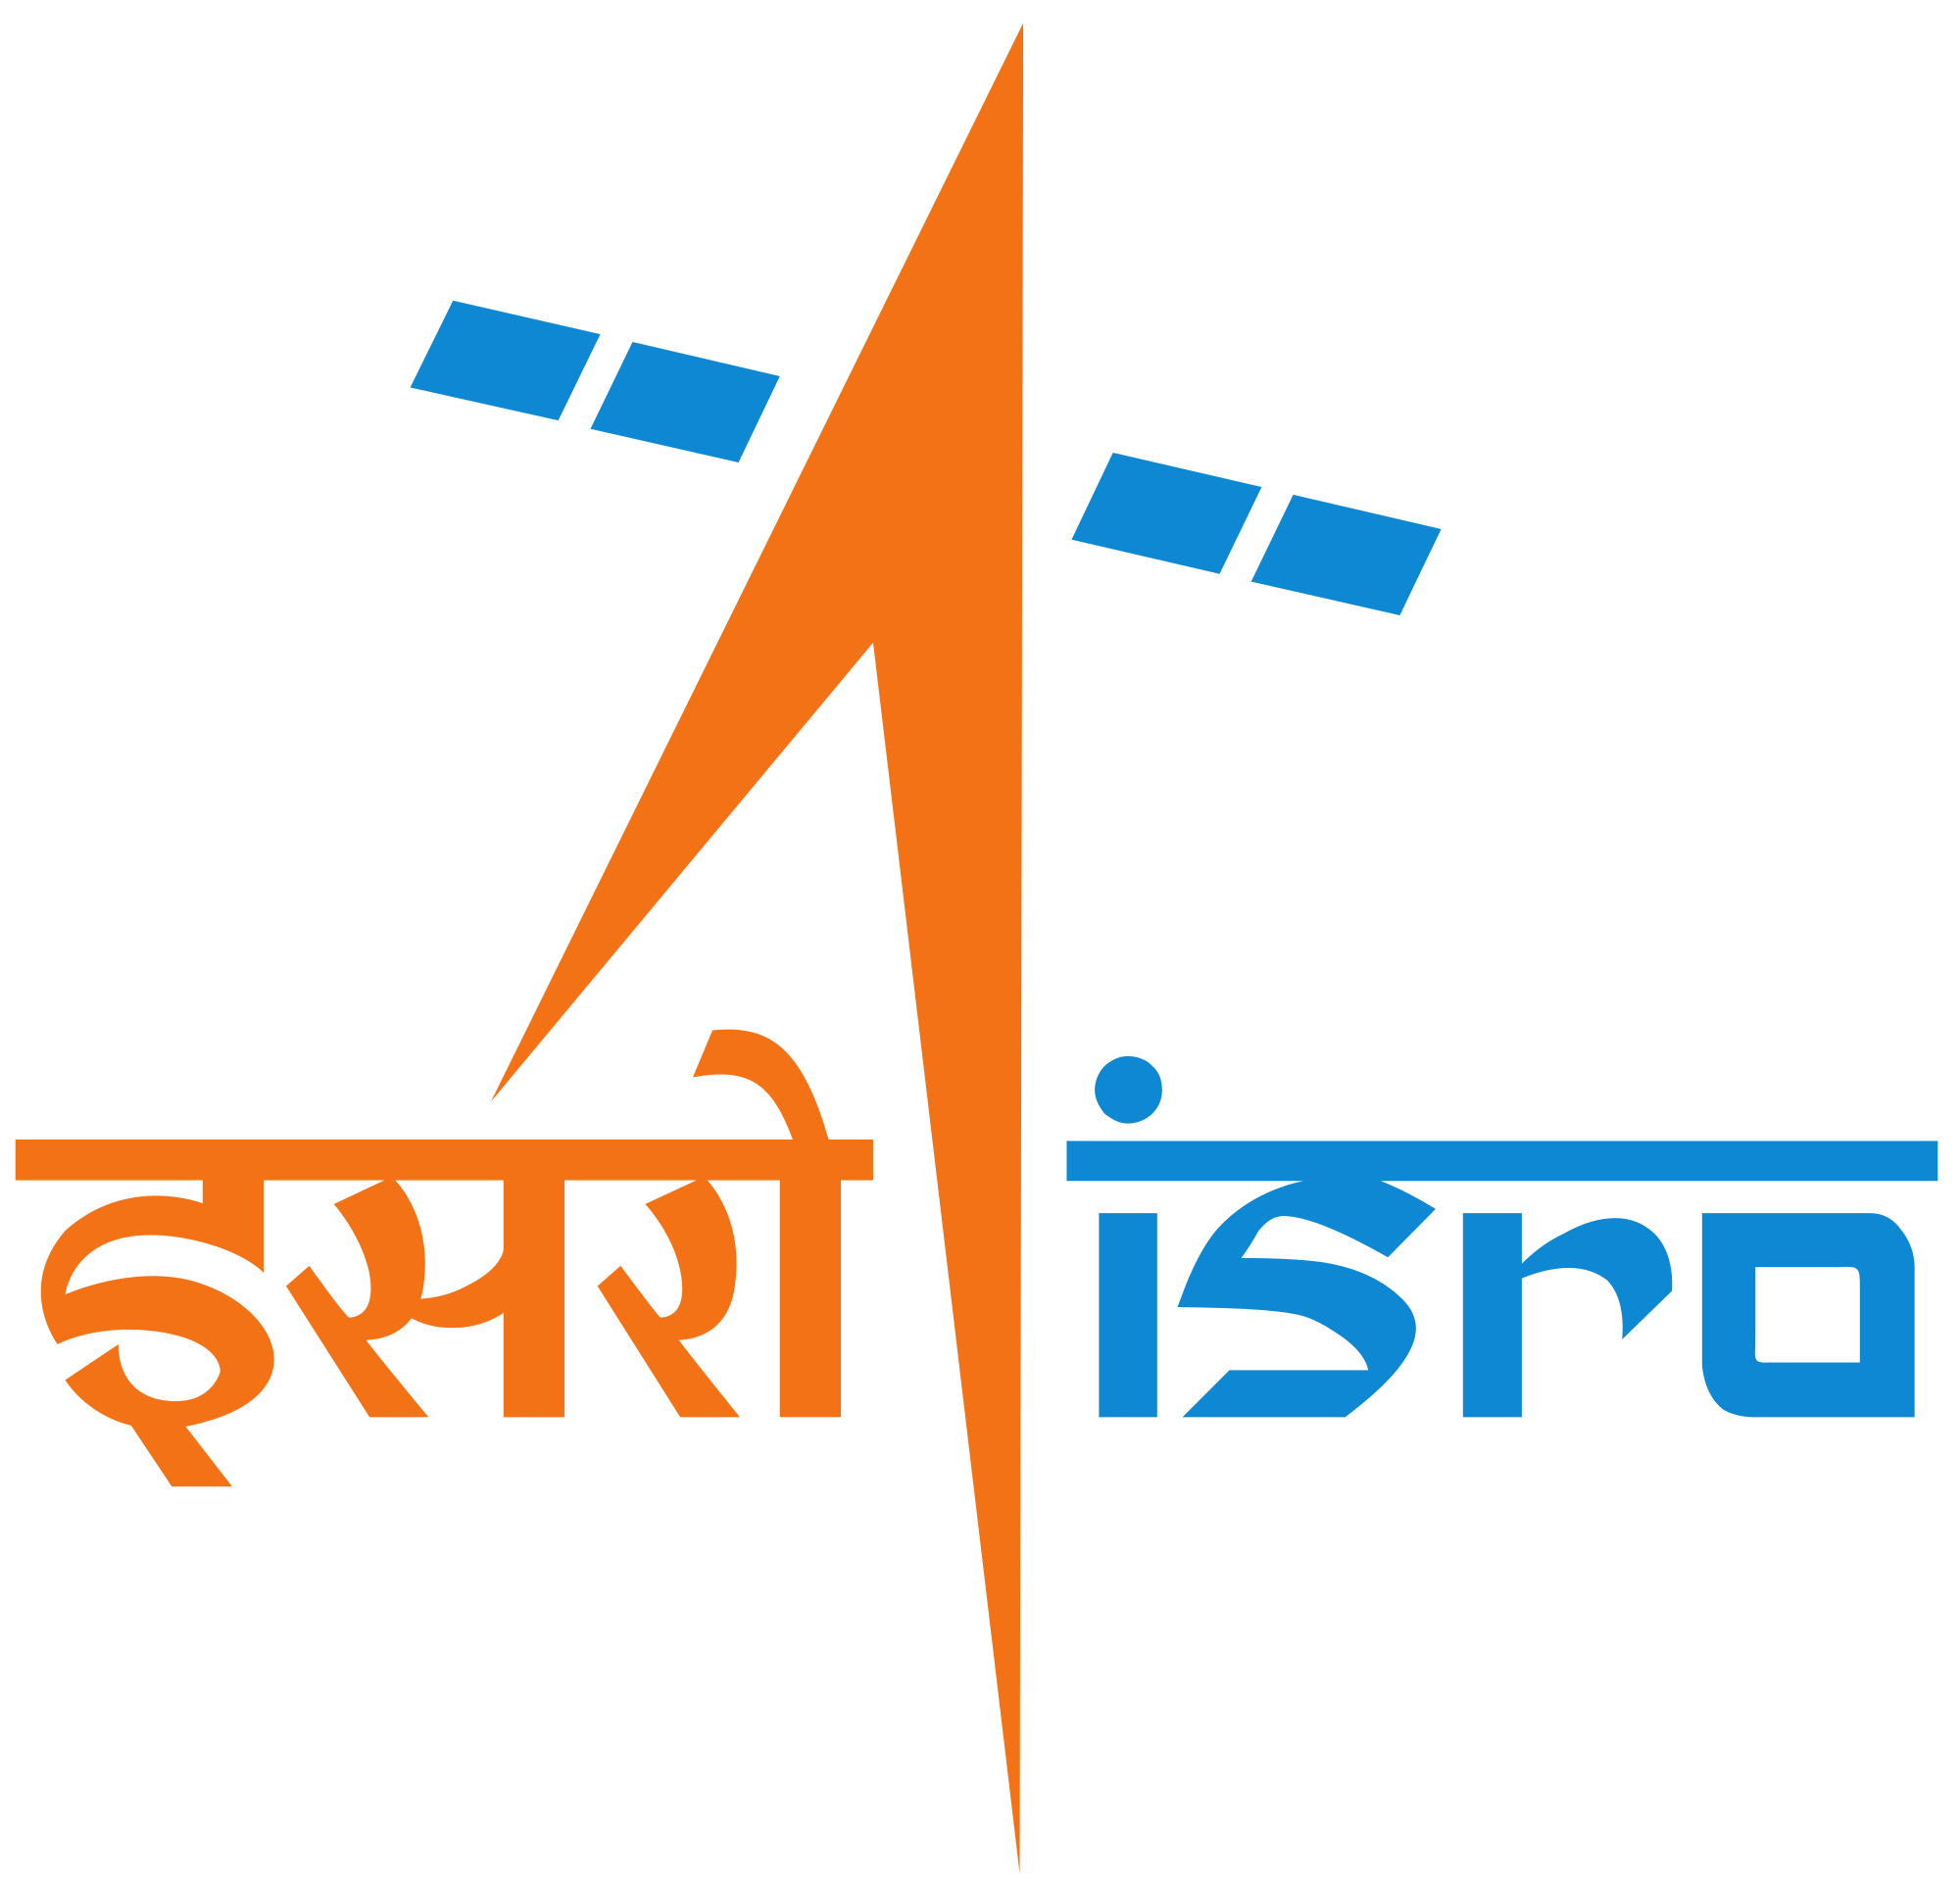 Future vector study. Indian space research organisation